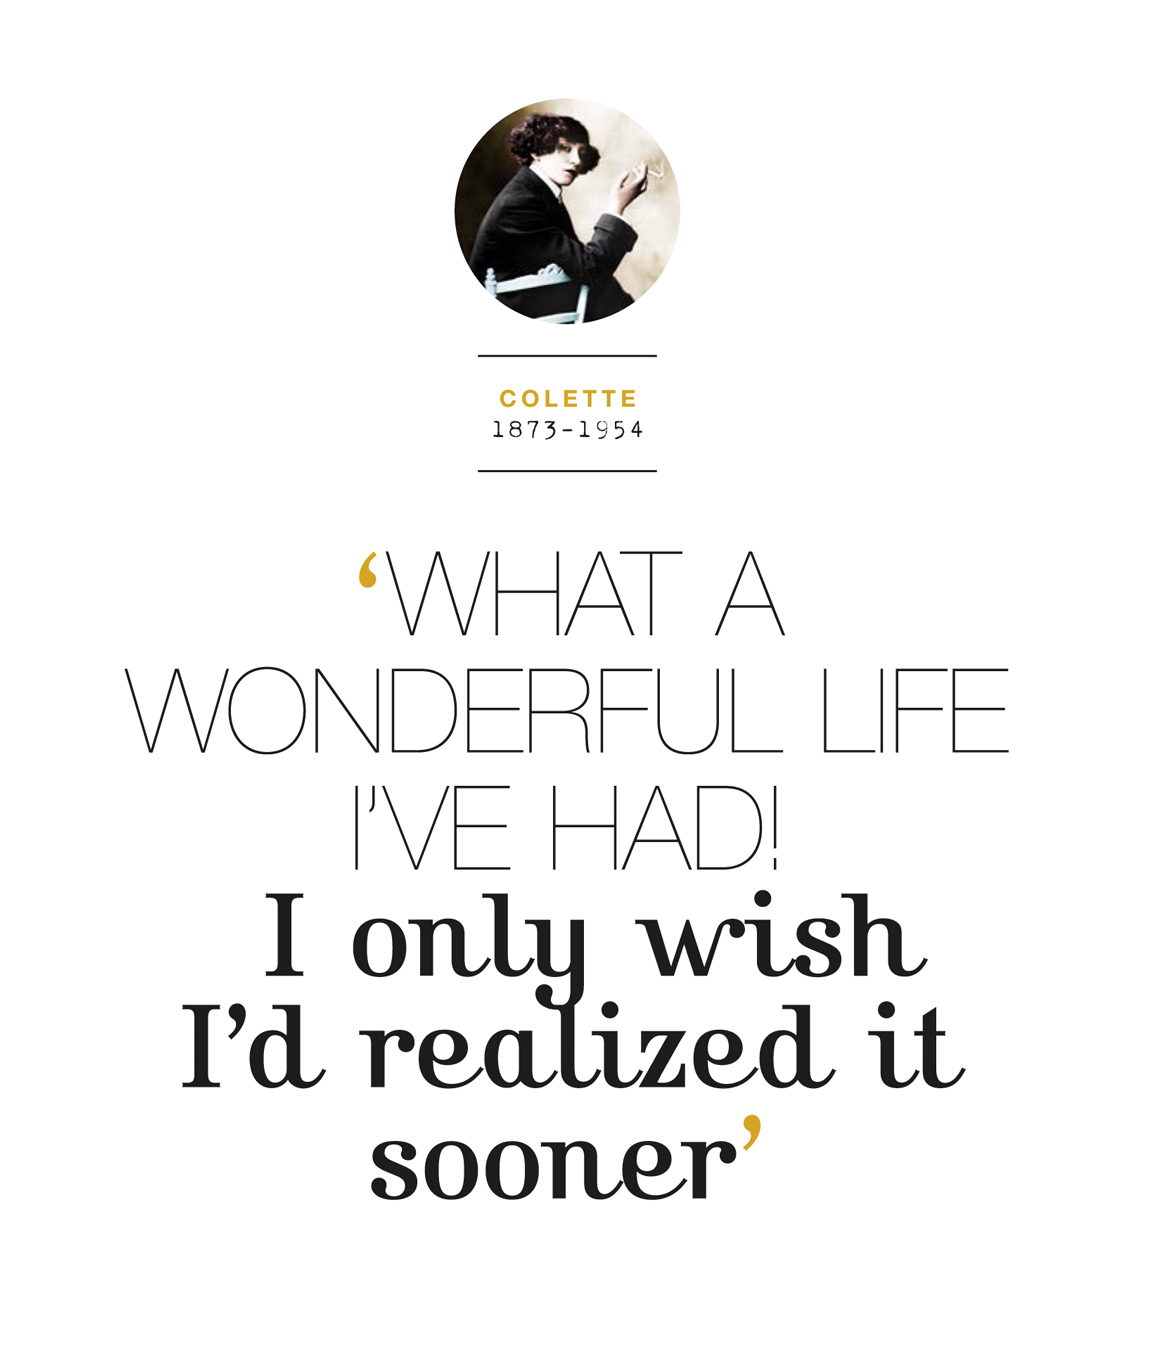 Quote Wonderful life